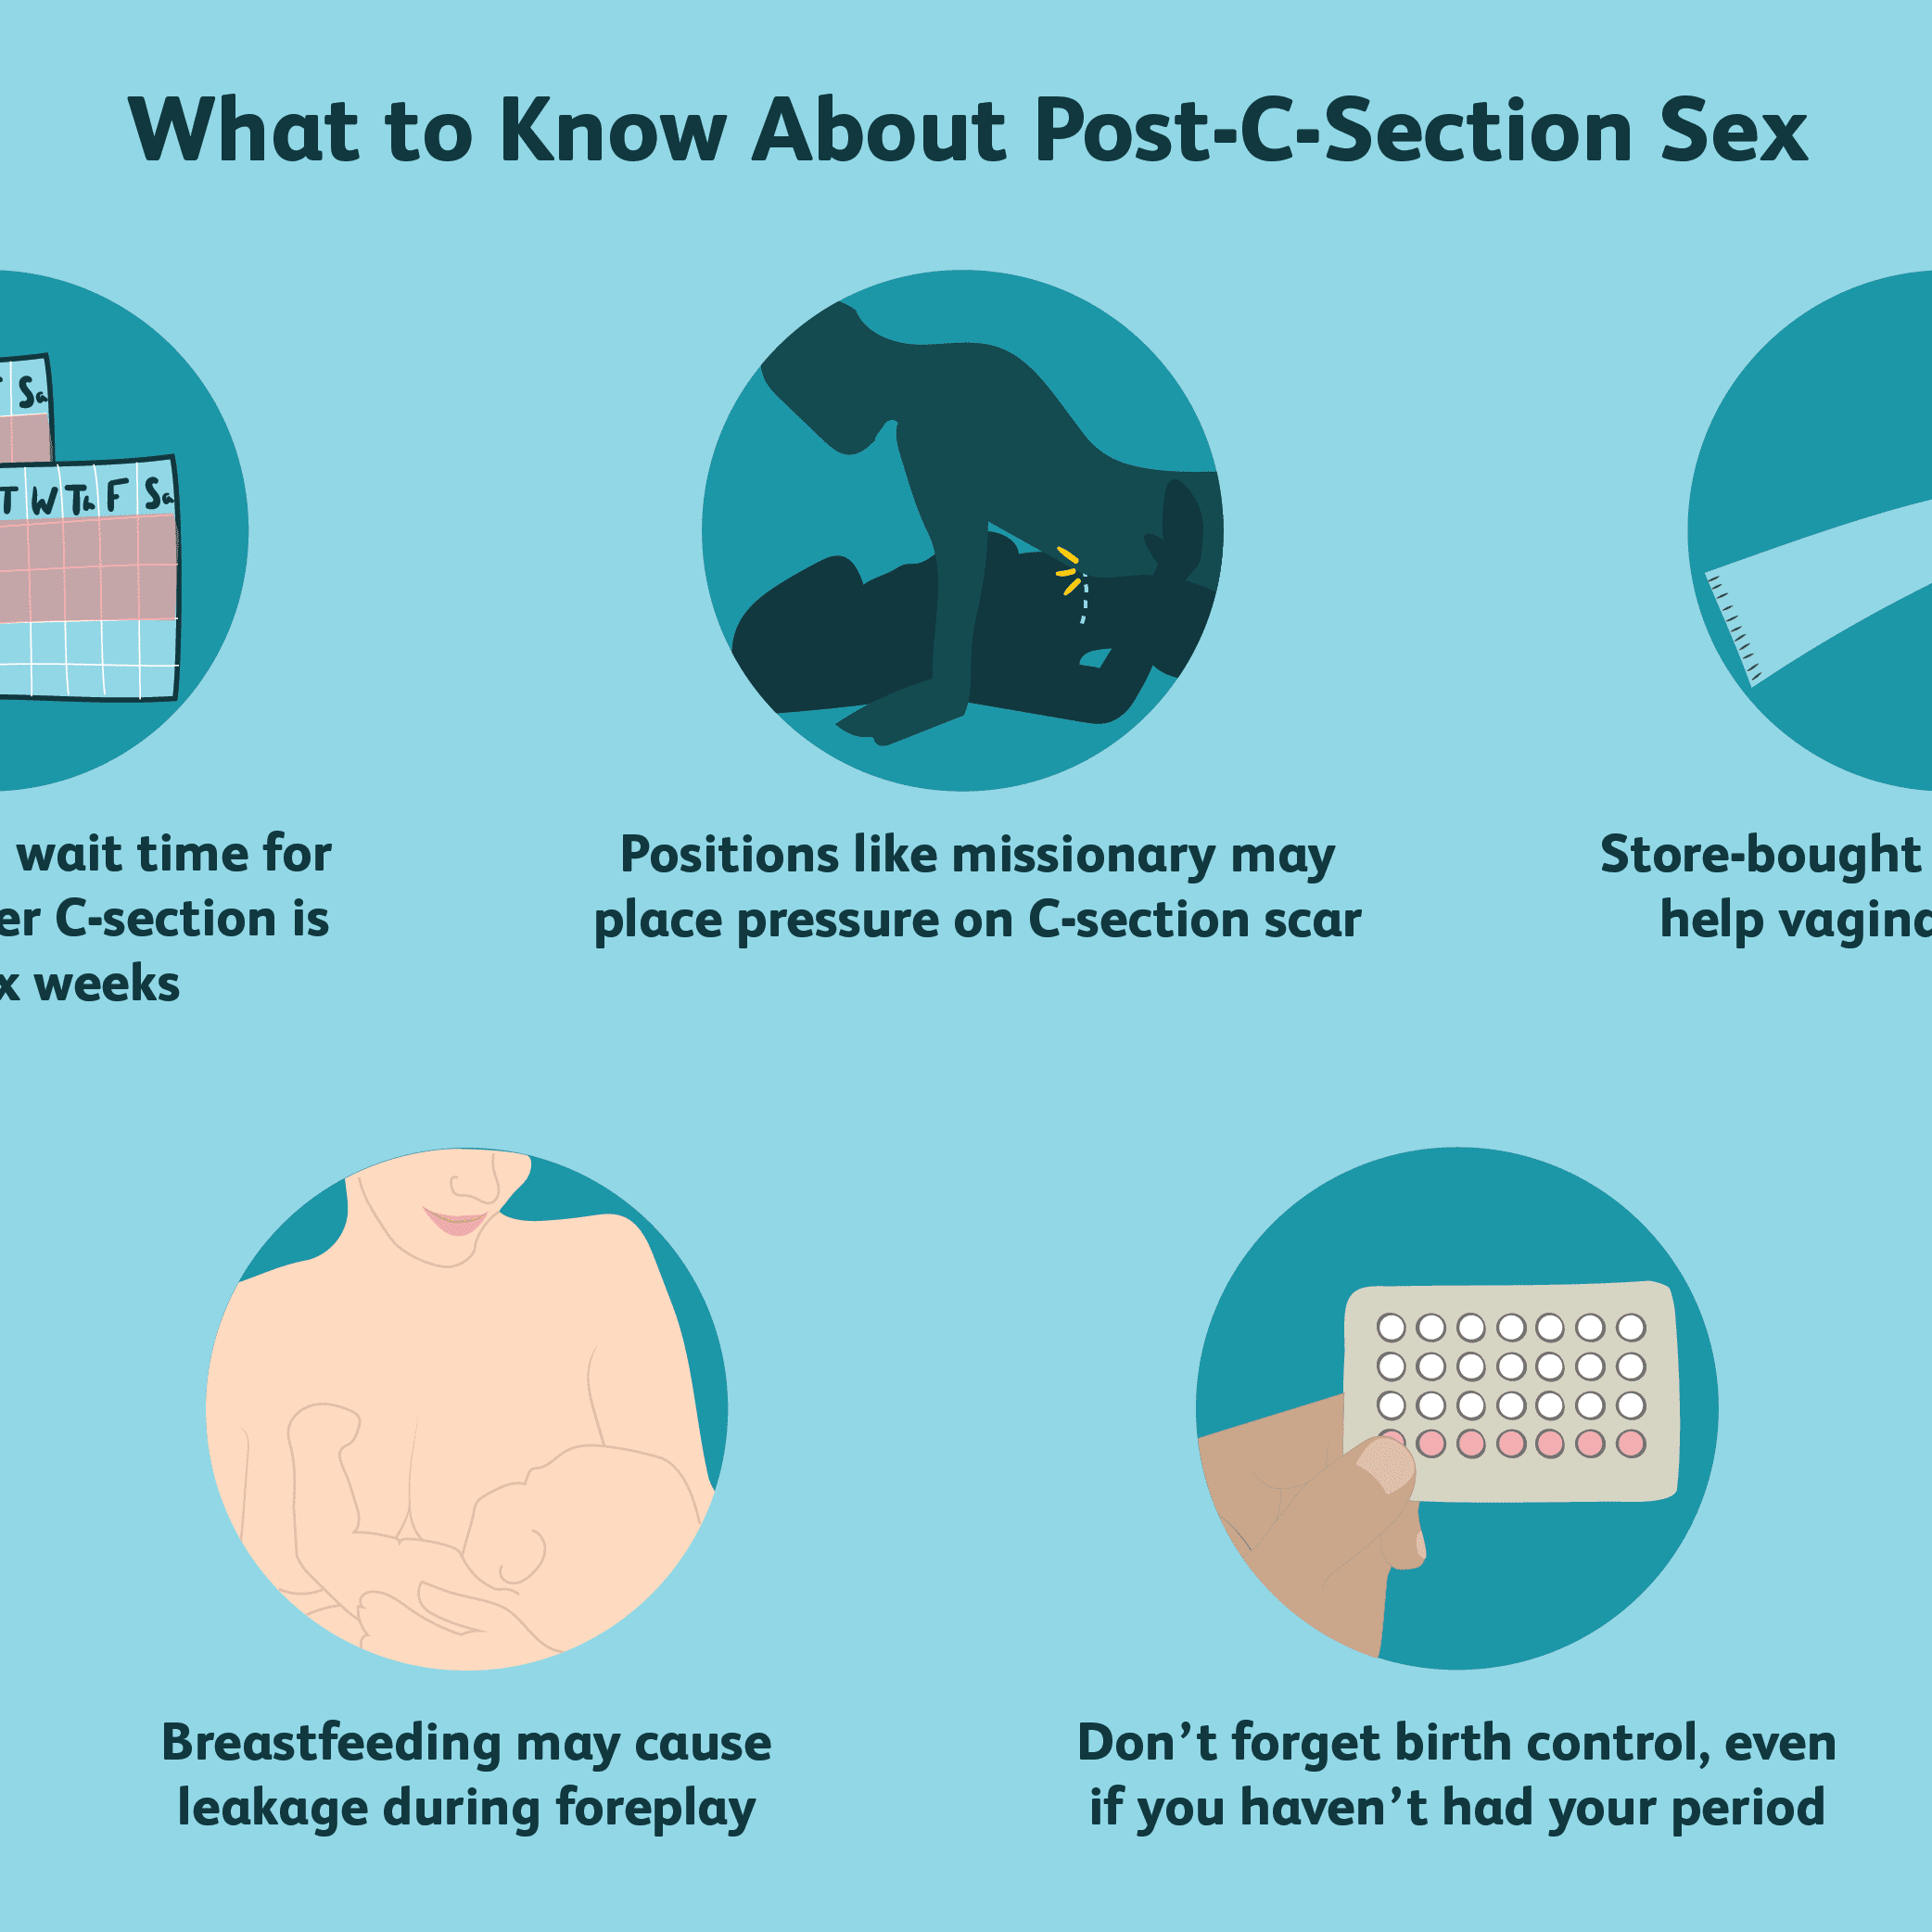 When Can You Have Sex After a C-Section?